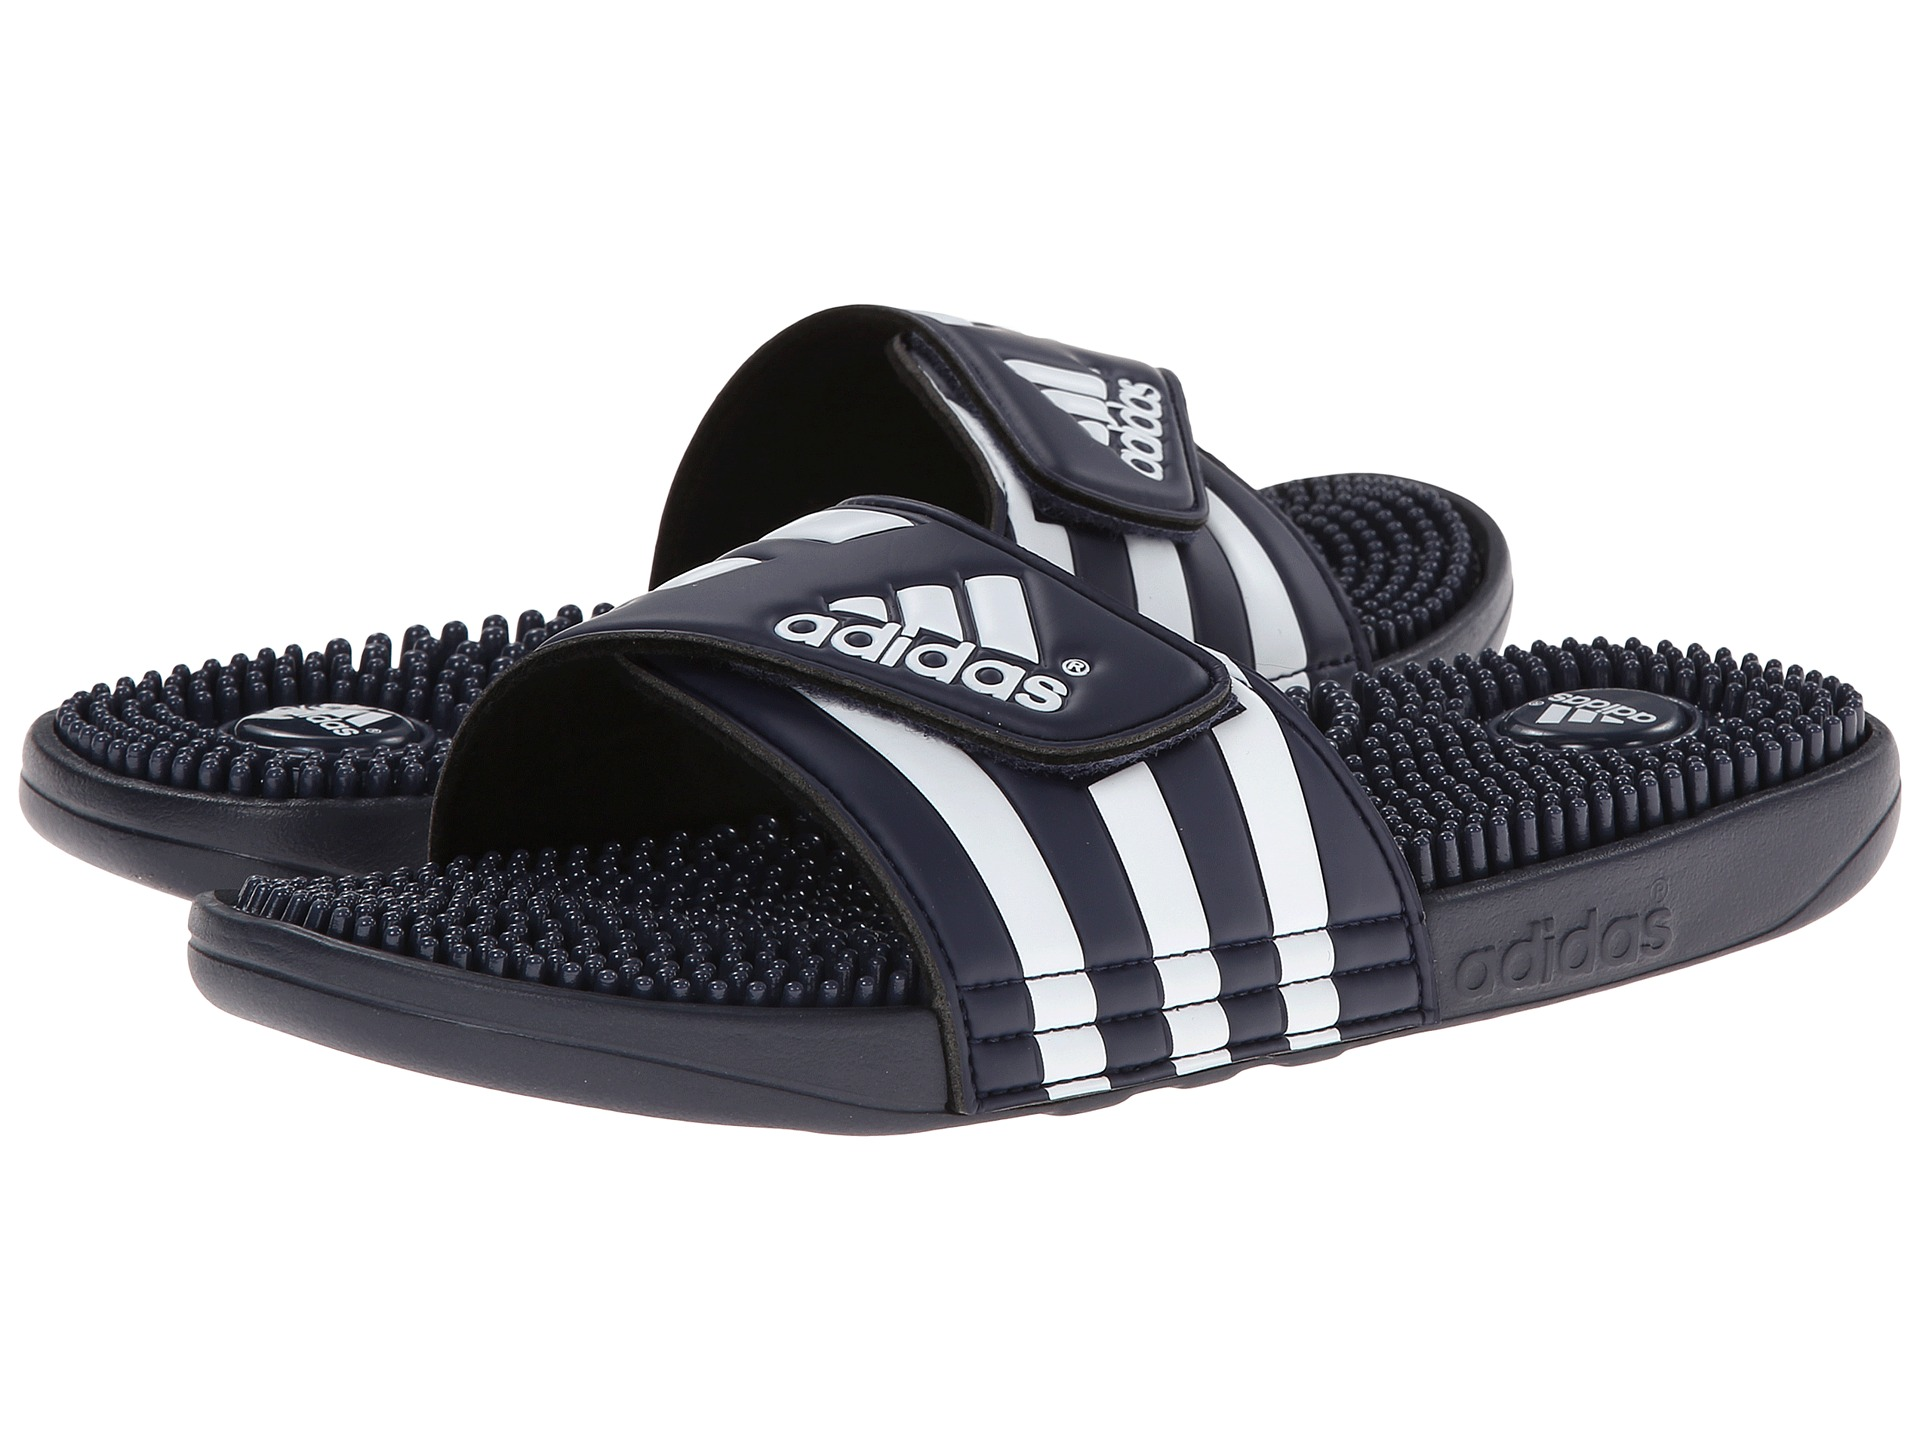 7599f8d524bb Buy adidas massage slippers   OFF72% Discounted